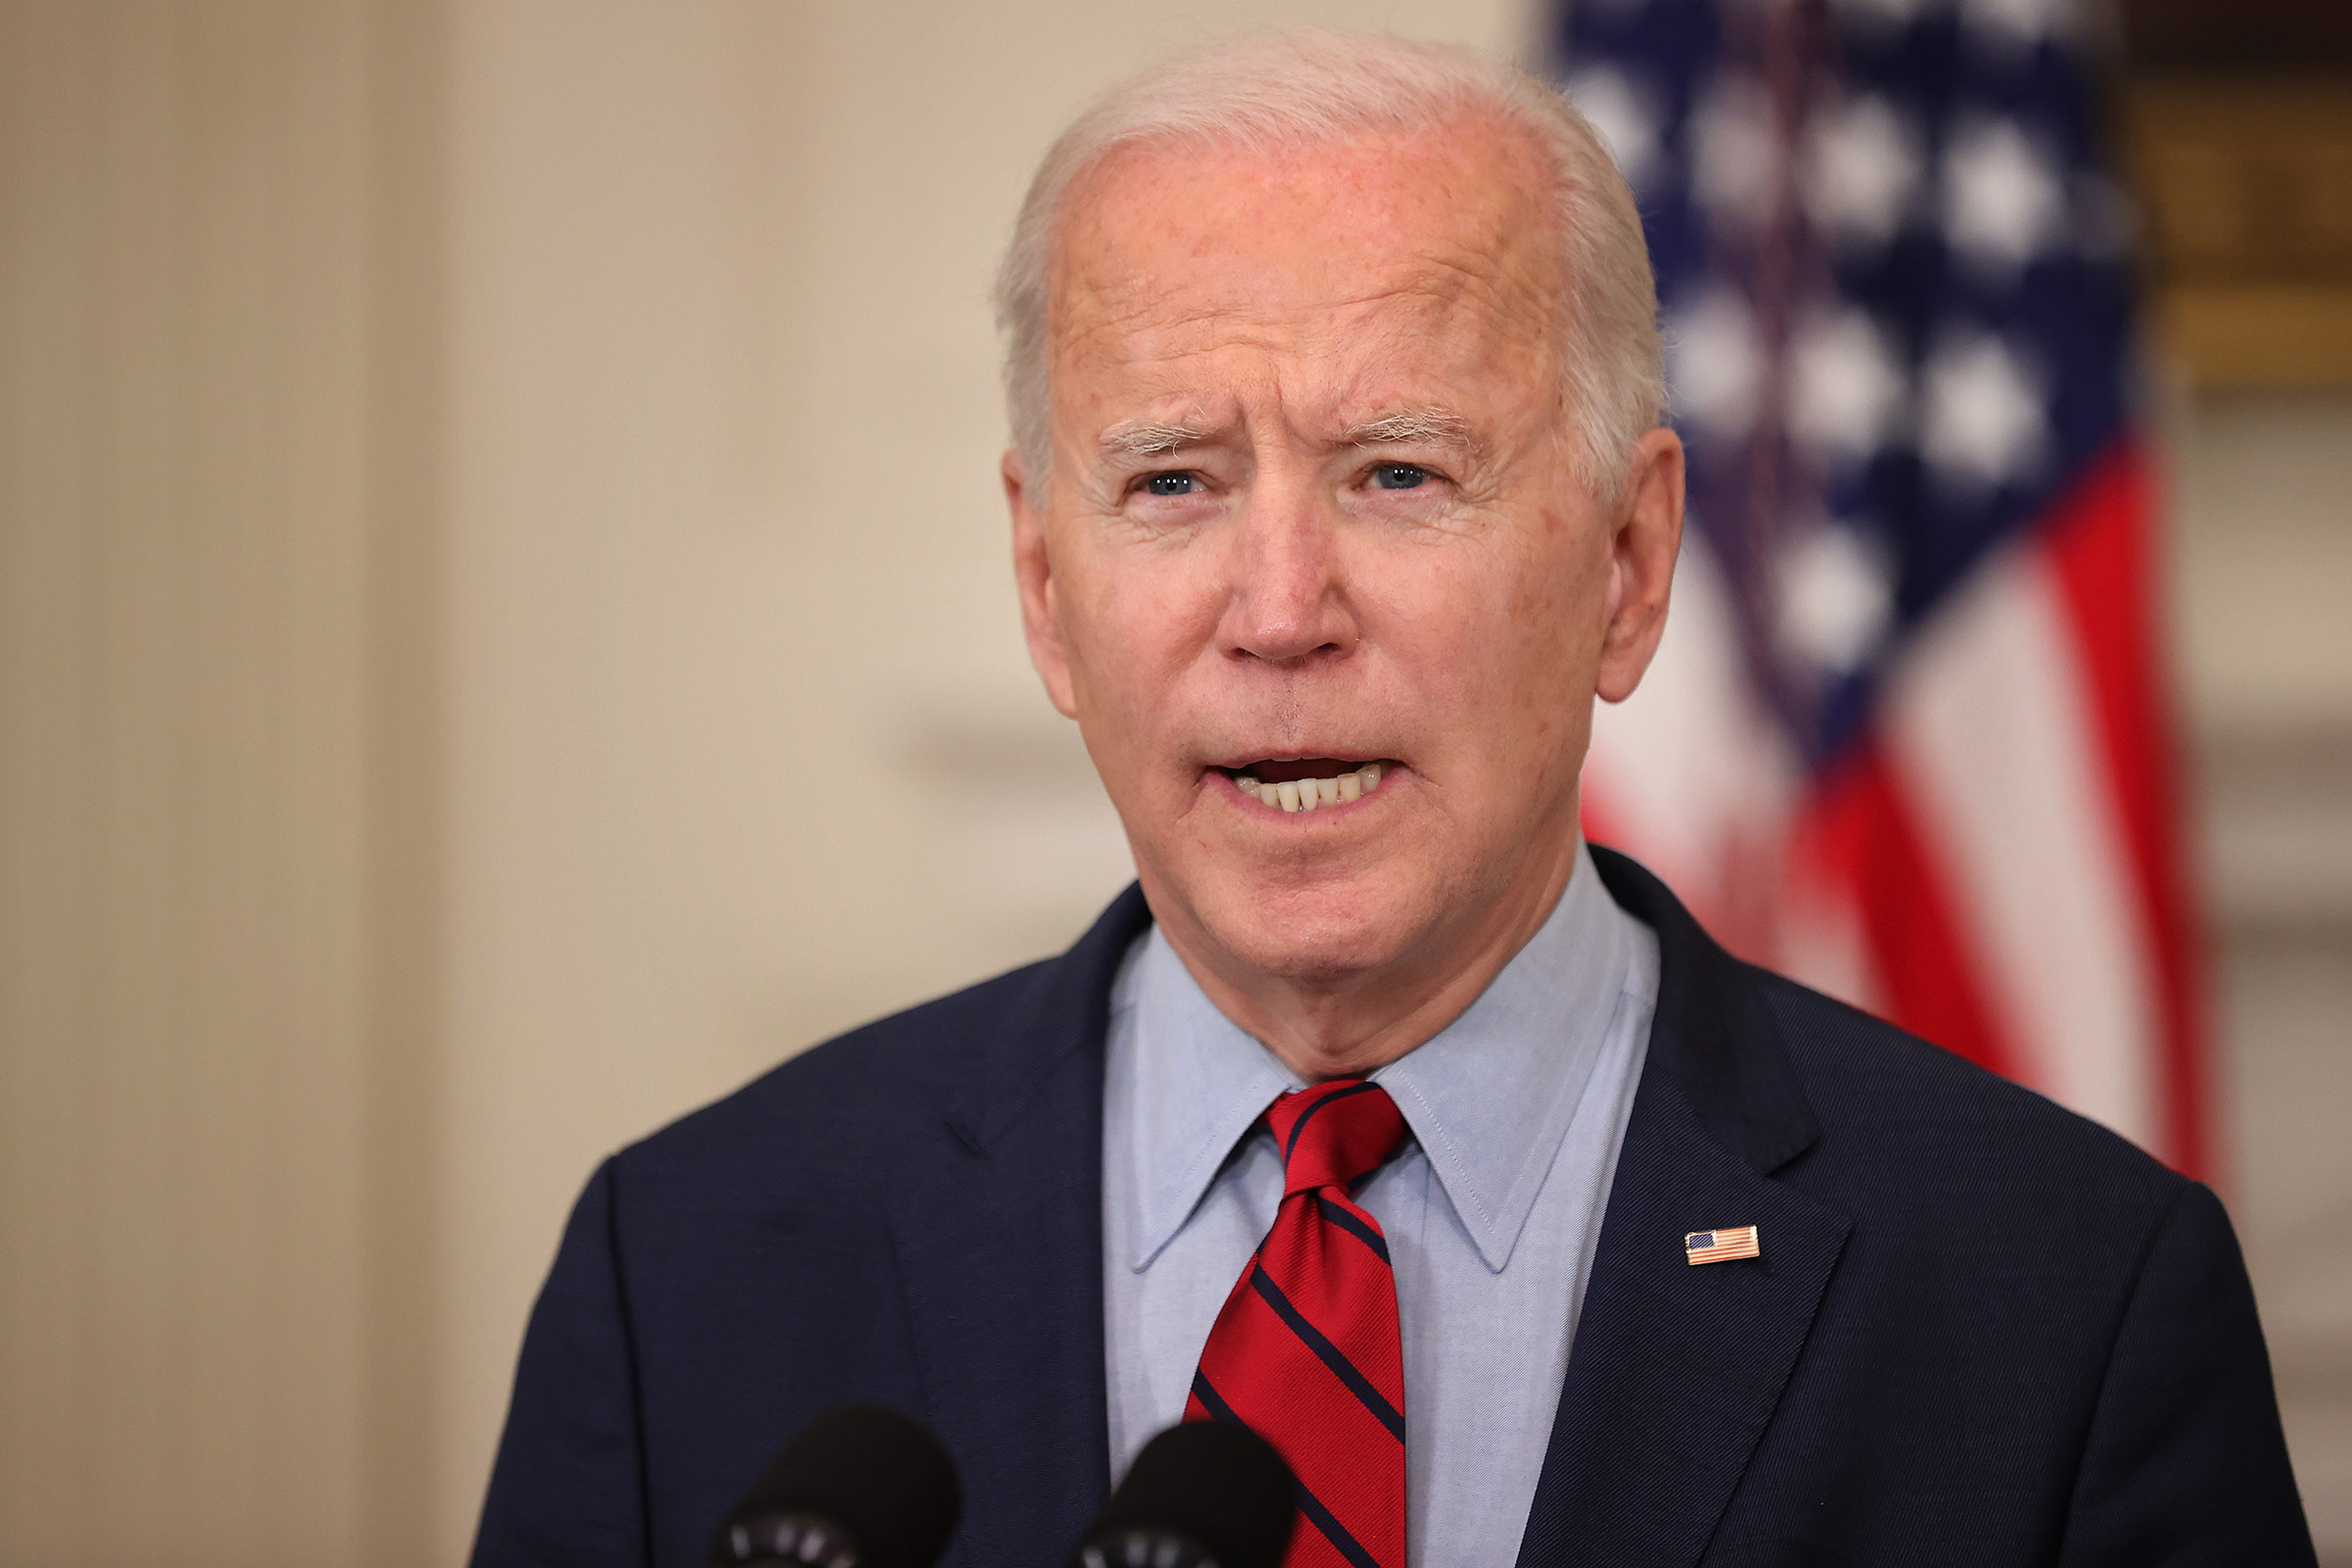 President Joe Biden speaks during a press conference at the White House on March 23, in Washington, DC.